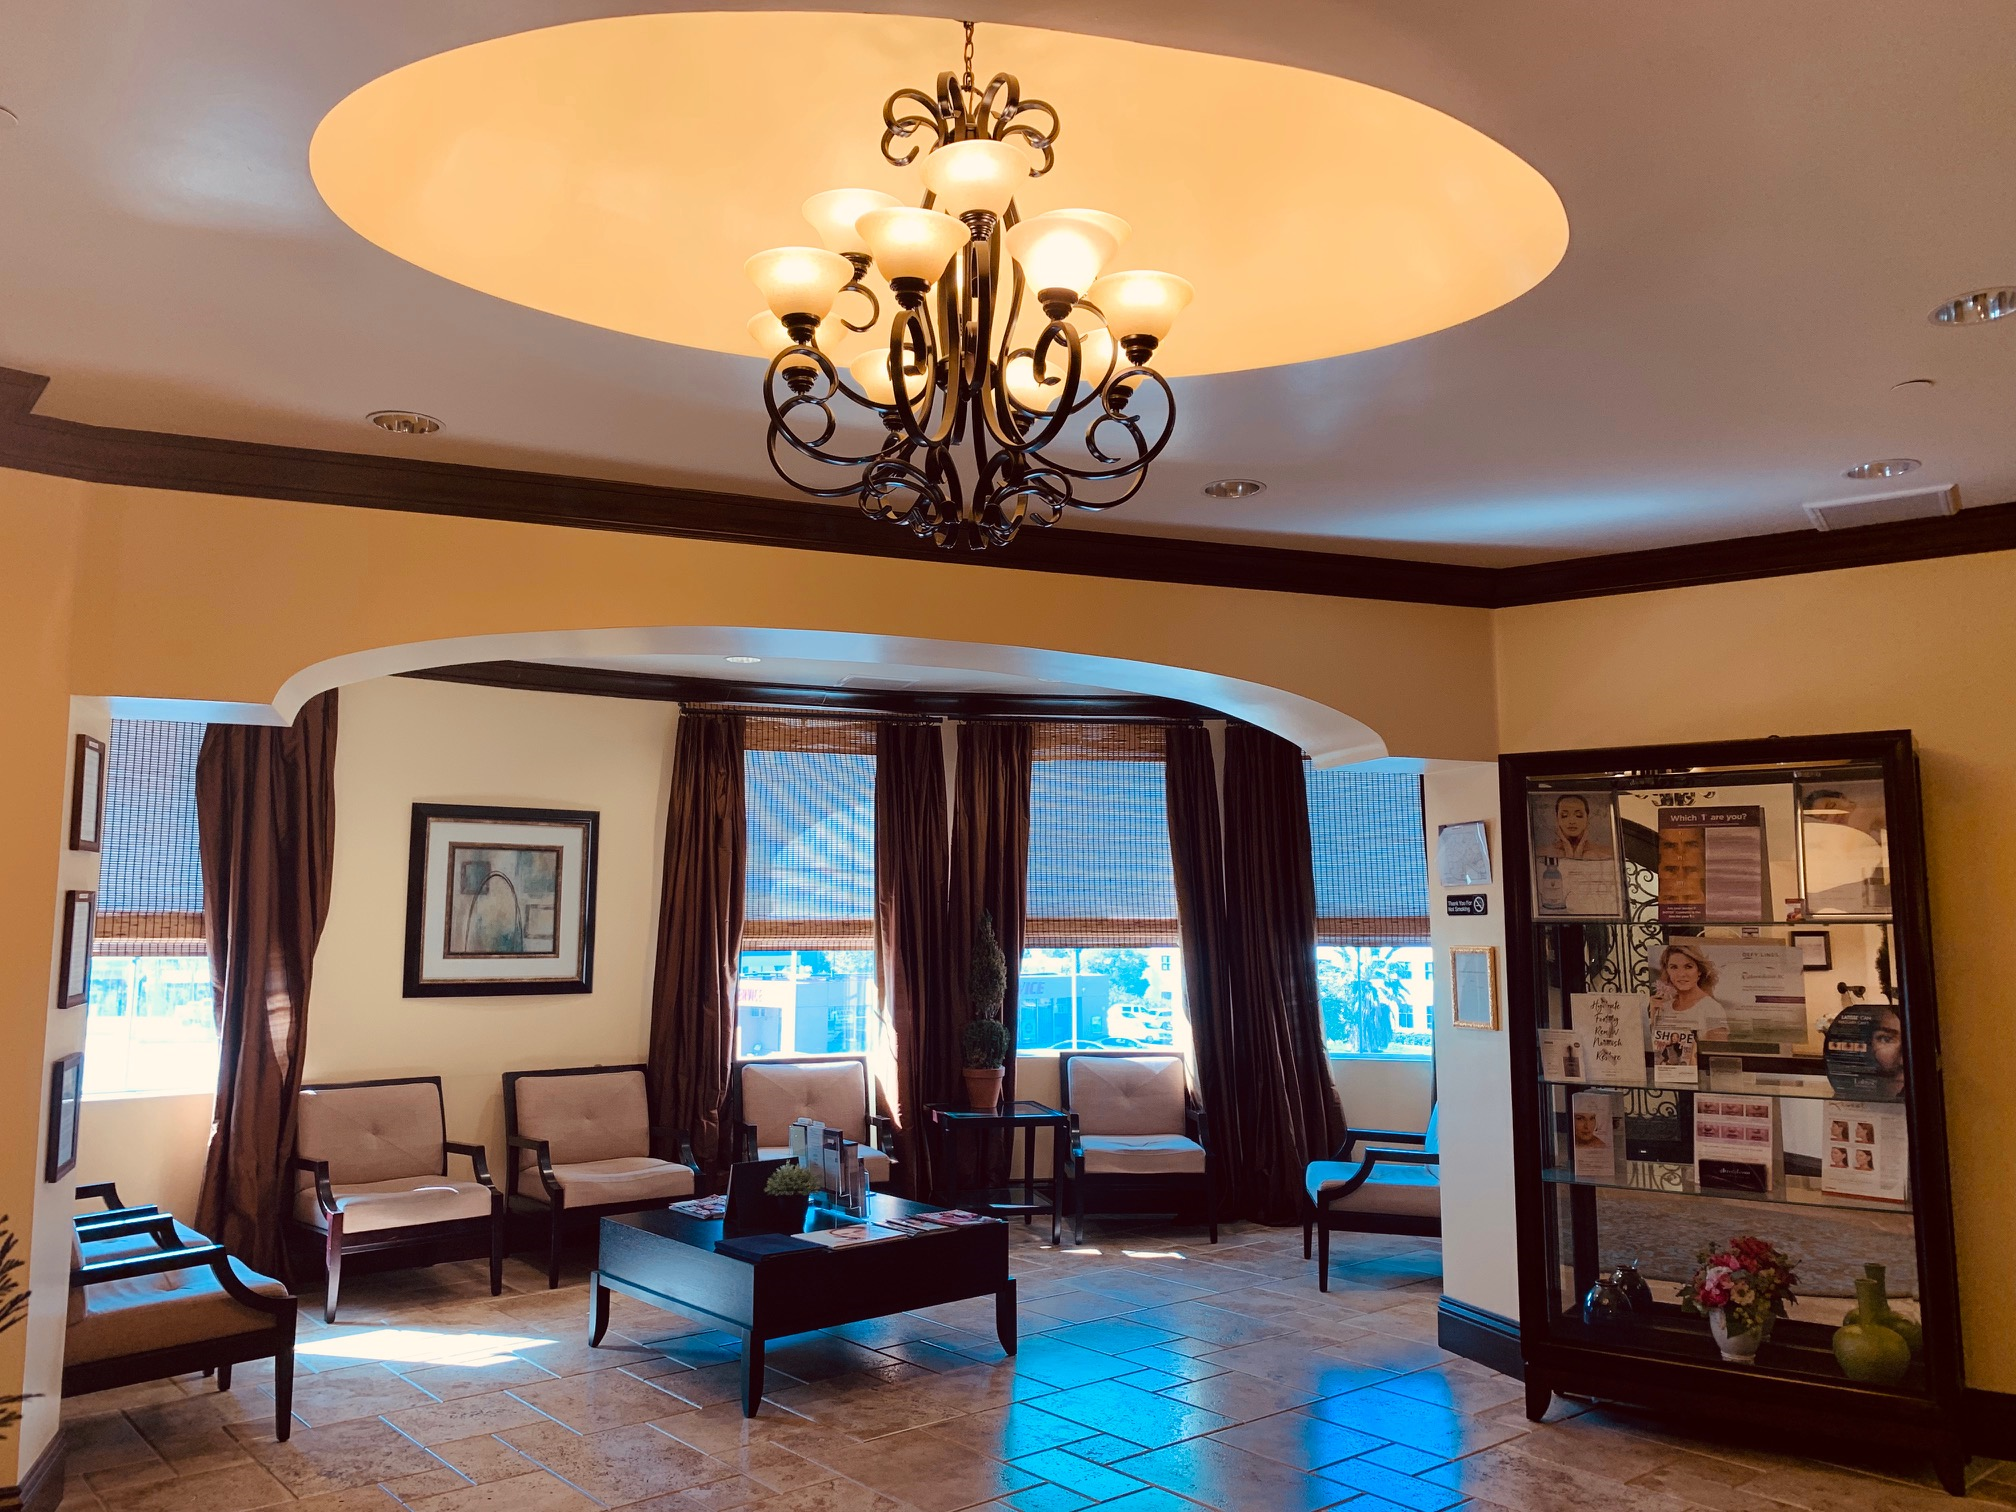 Foothill Cosmetic Surgery Center